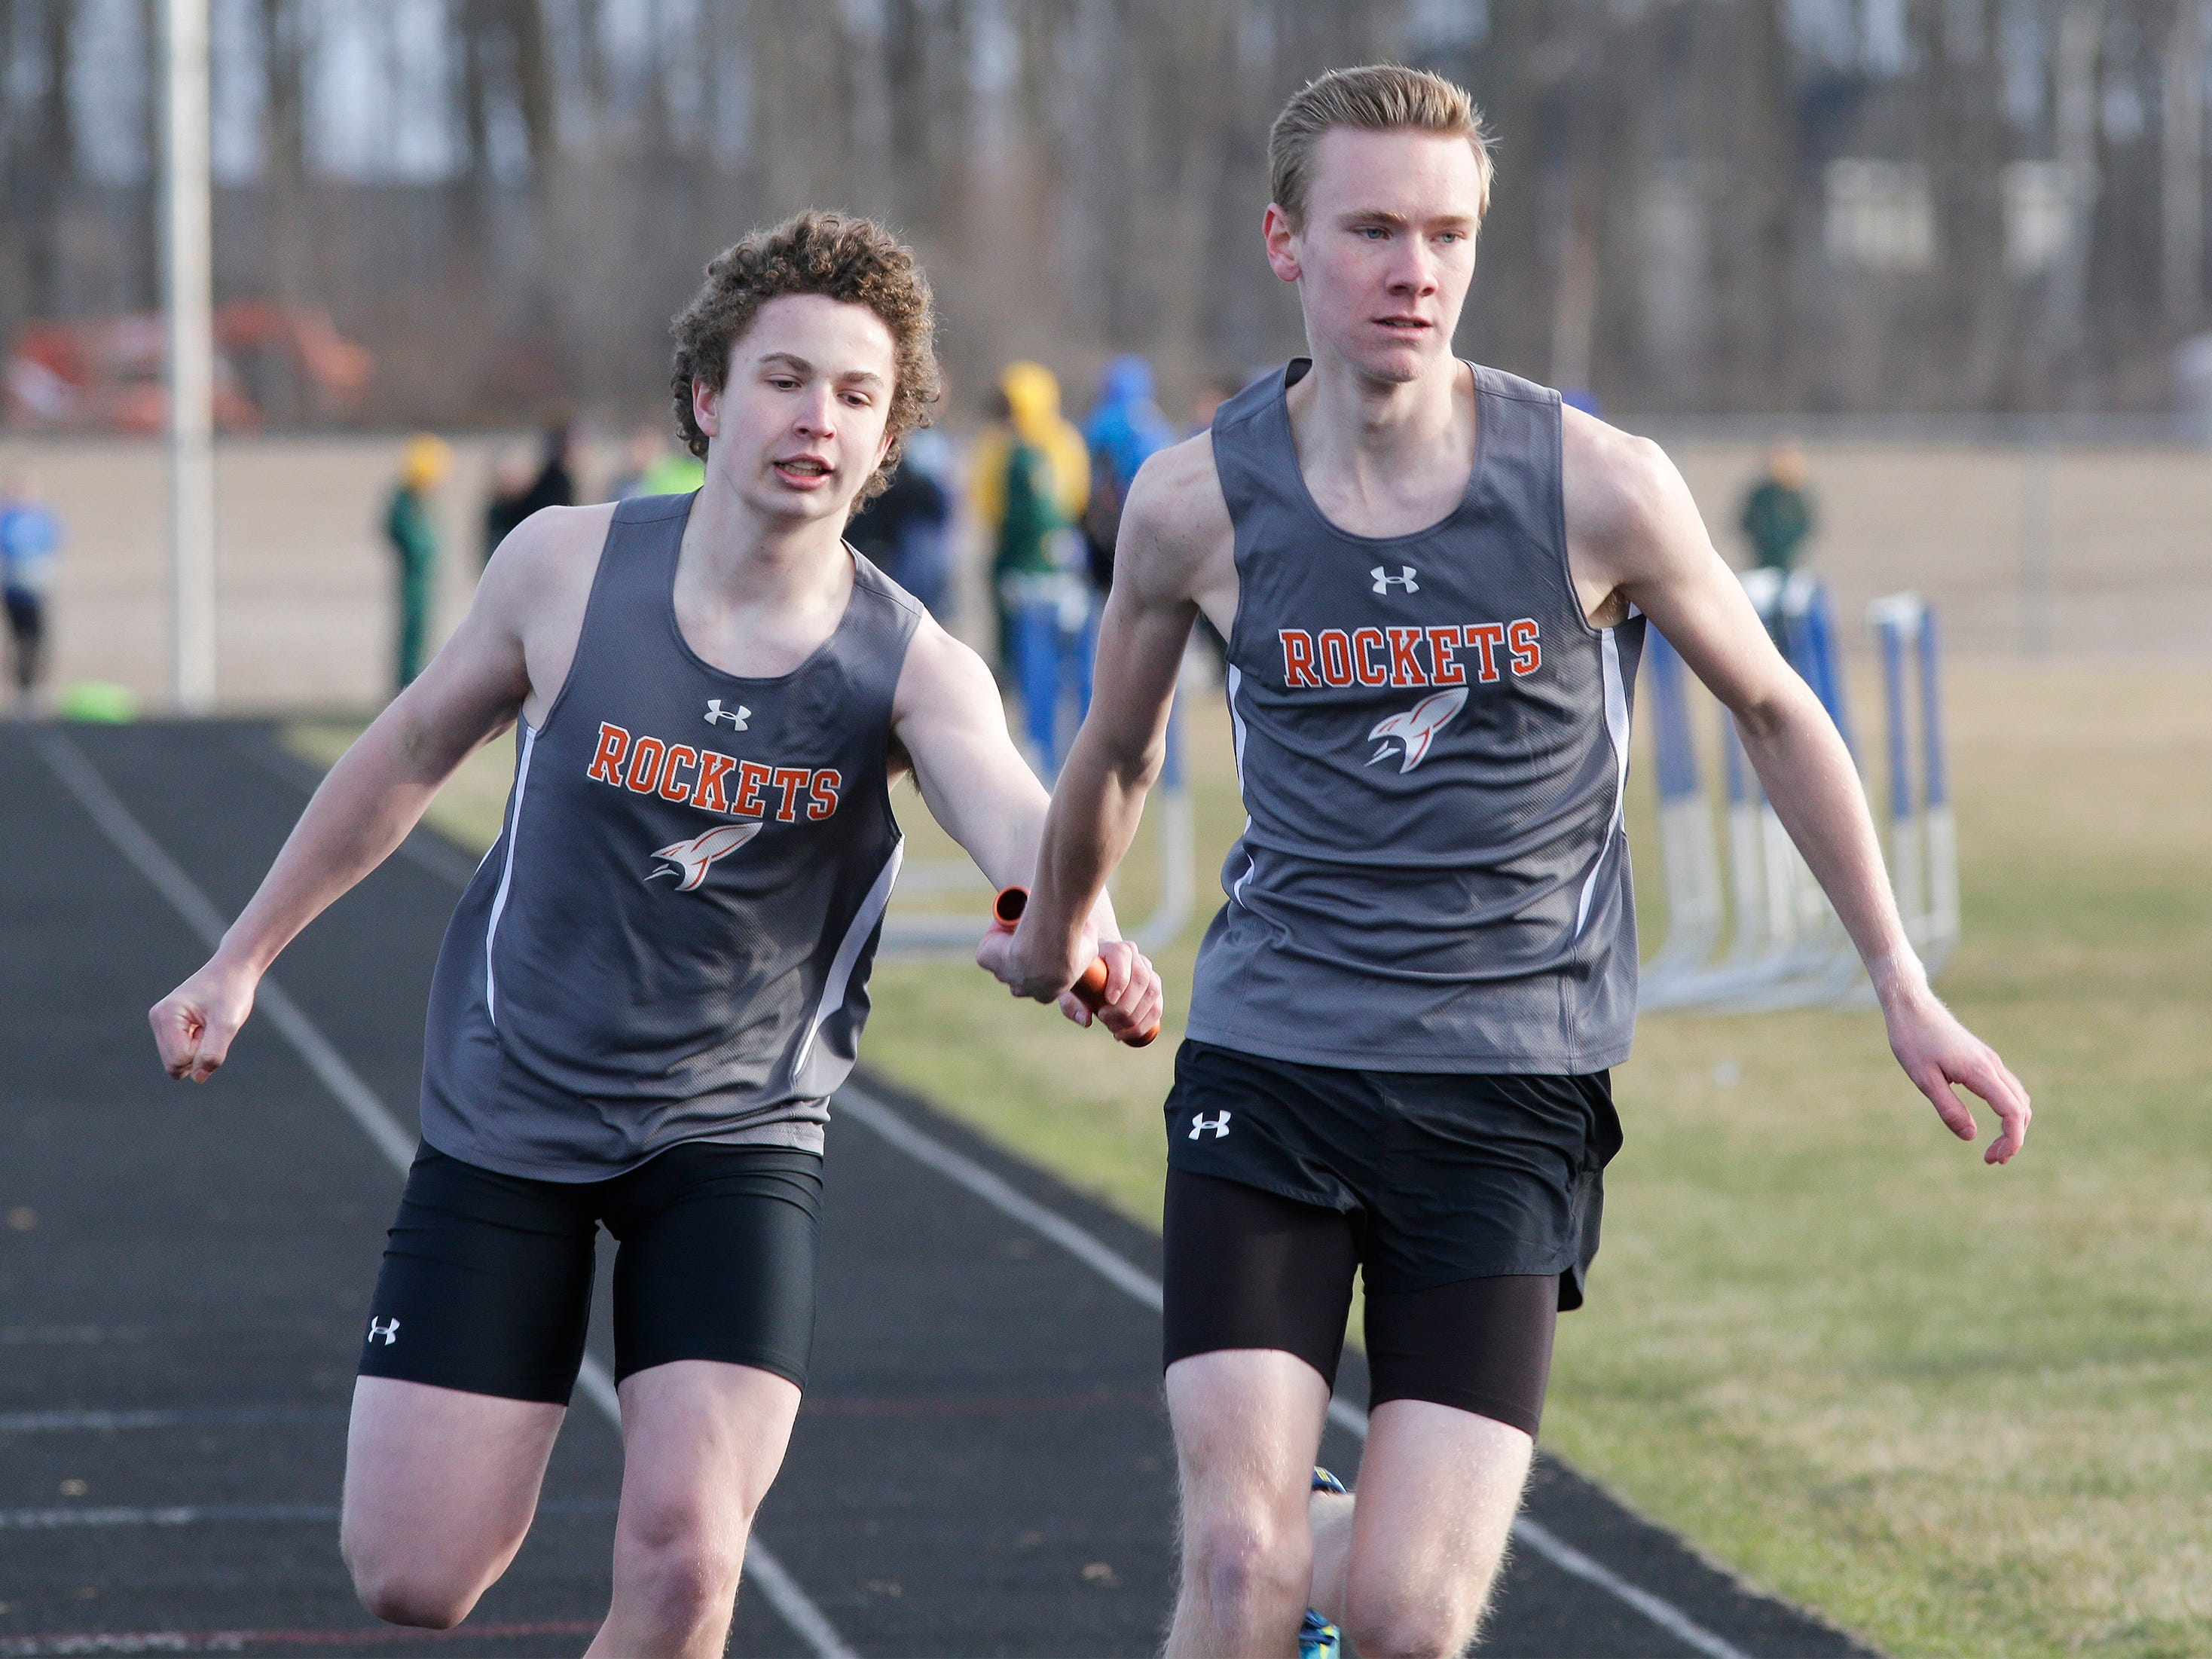 Cedar Grove-Belgium's Johnny Behrens, left, and Elliot Depies keep the pace in the 4 X 200 relay at the Howards Grove track meet, Tuesday, April 9, 2019, in Howards, Wis.